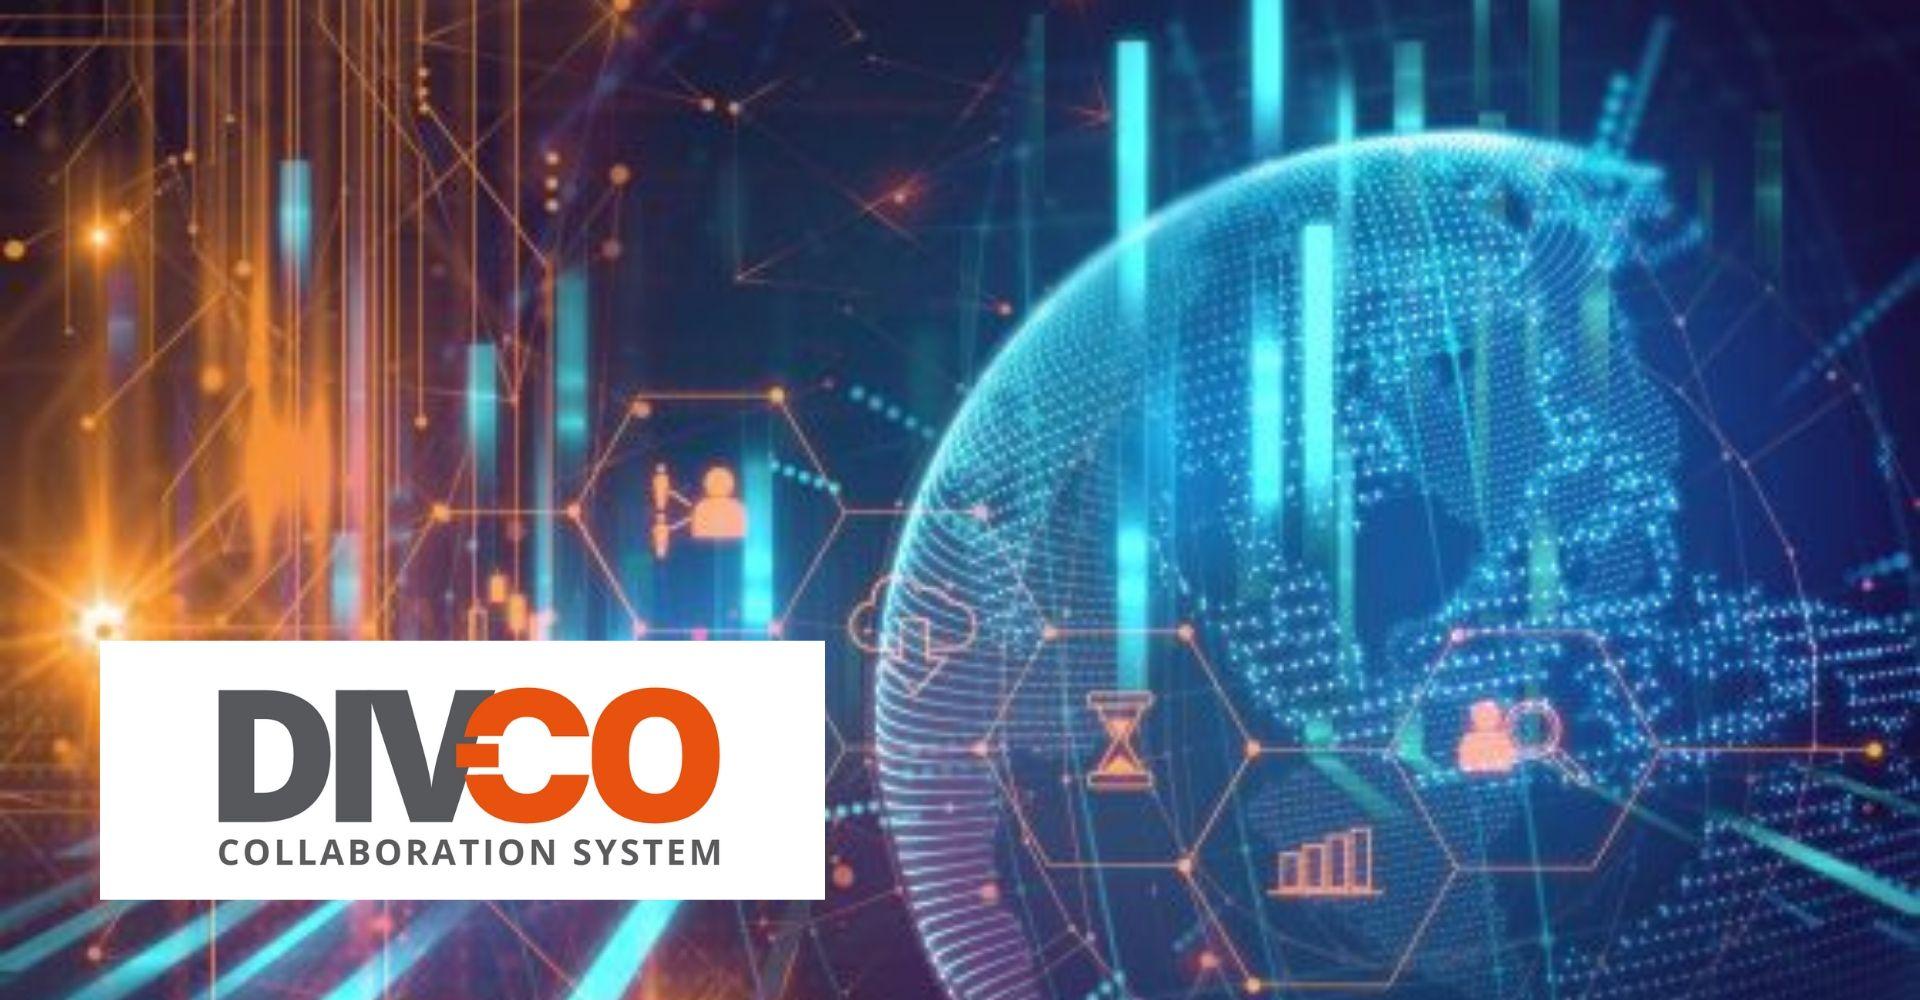 DIV-CO Collaboration System by H-ON Consulting